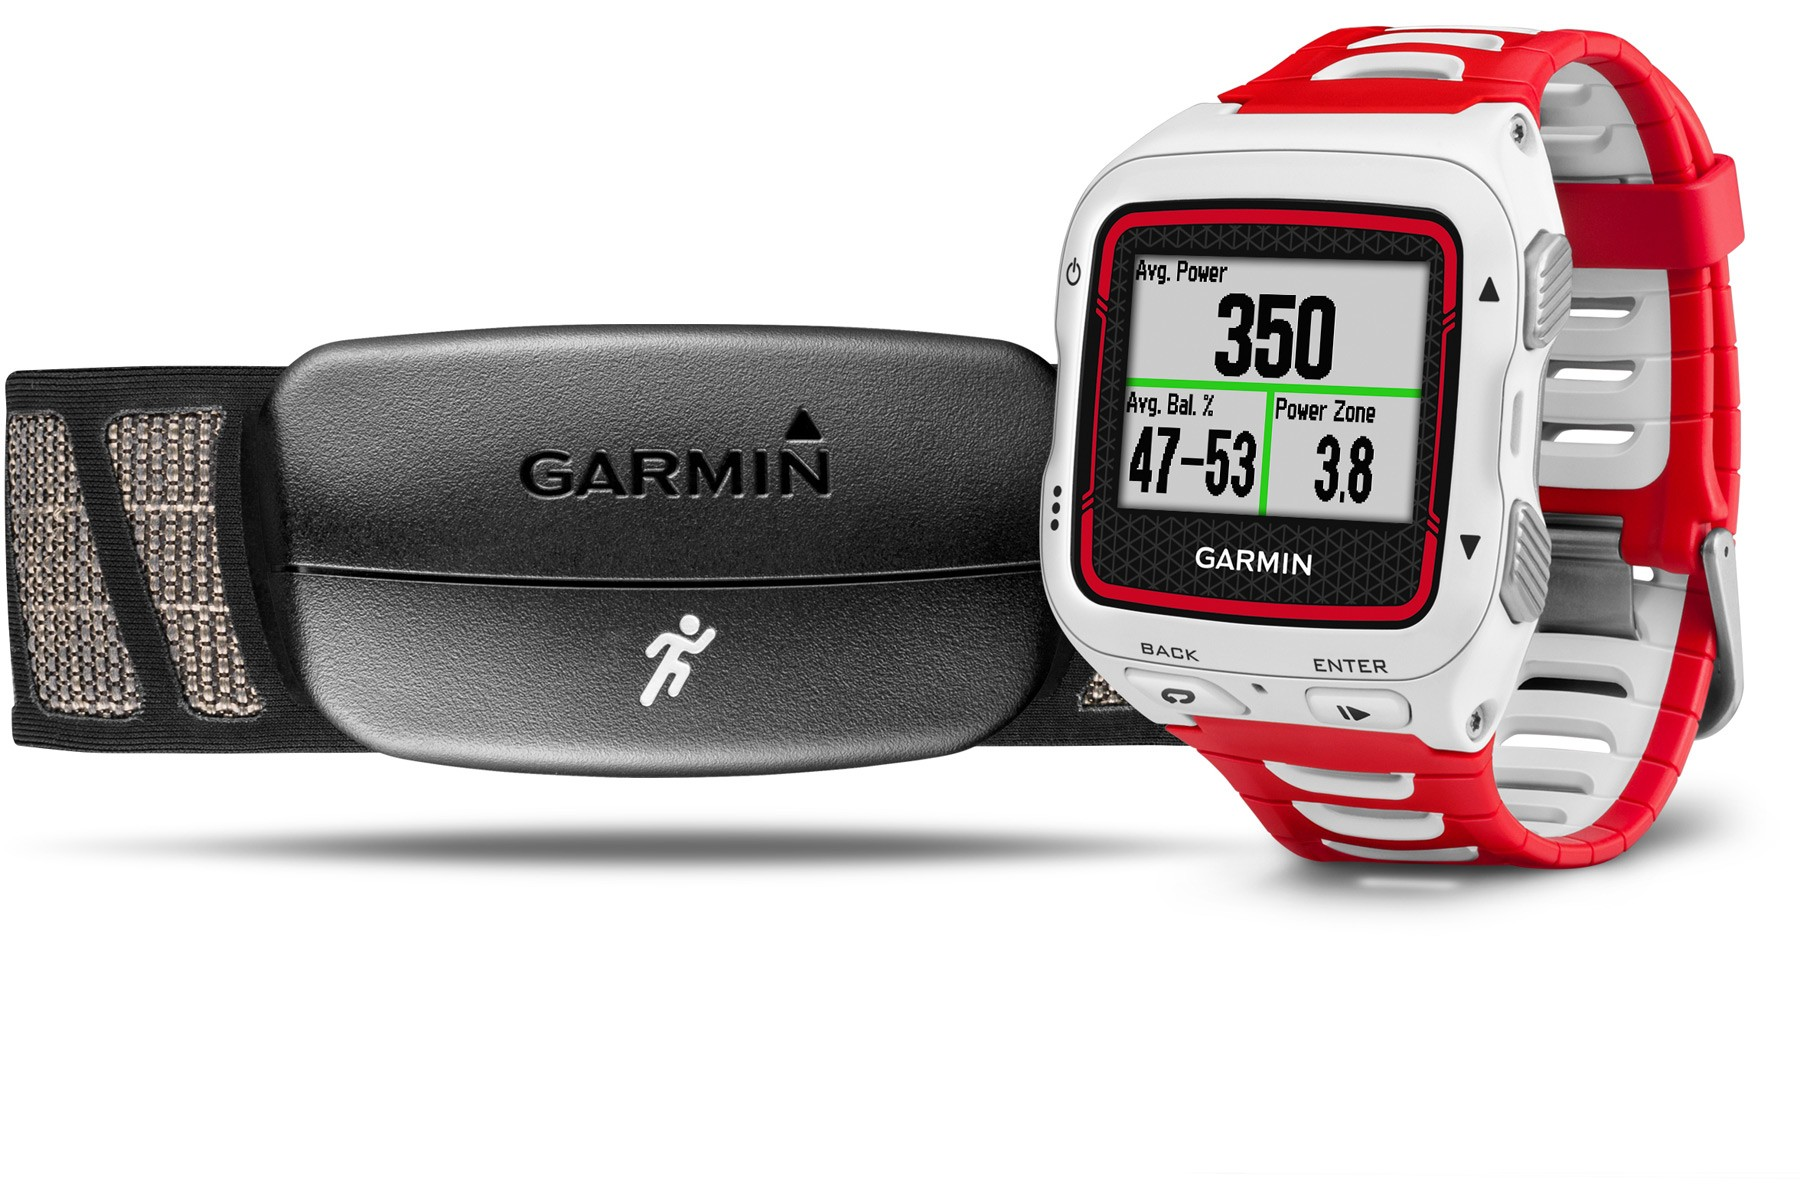 Garmin Forerunner 920XT multisport GPS watch - white and red bundle